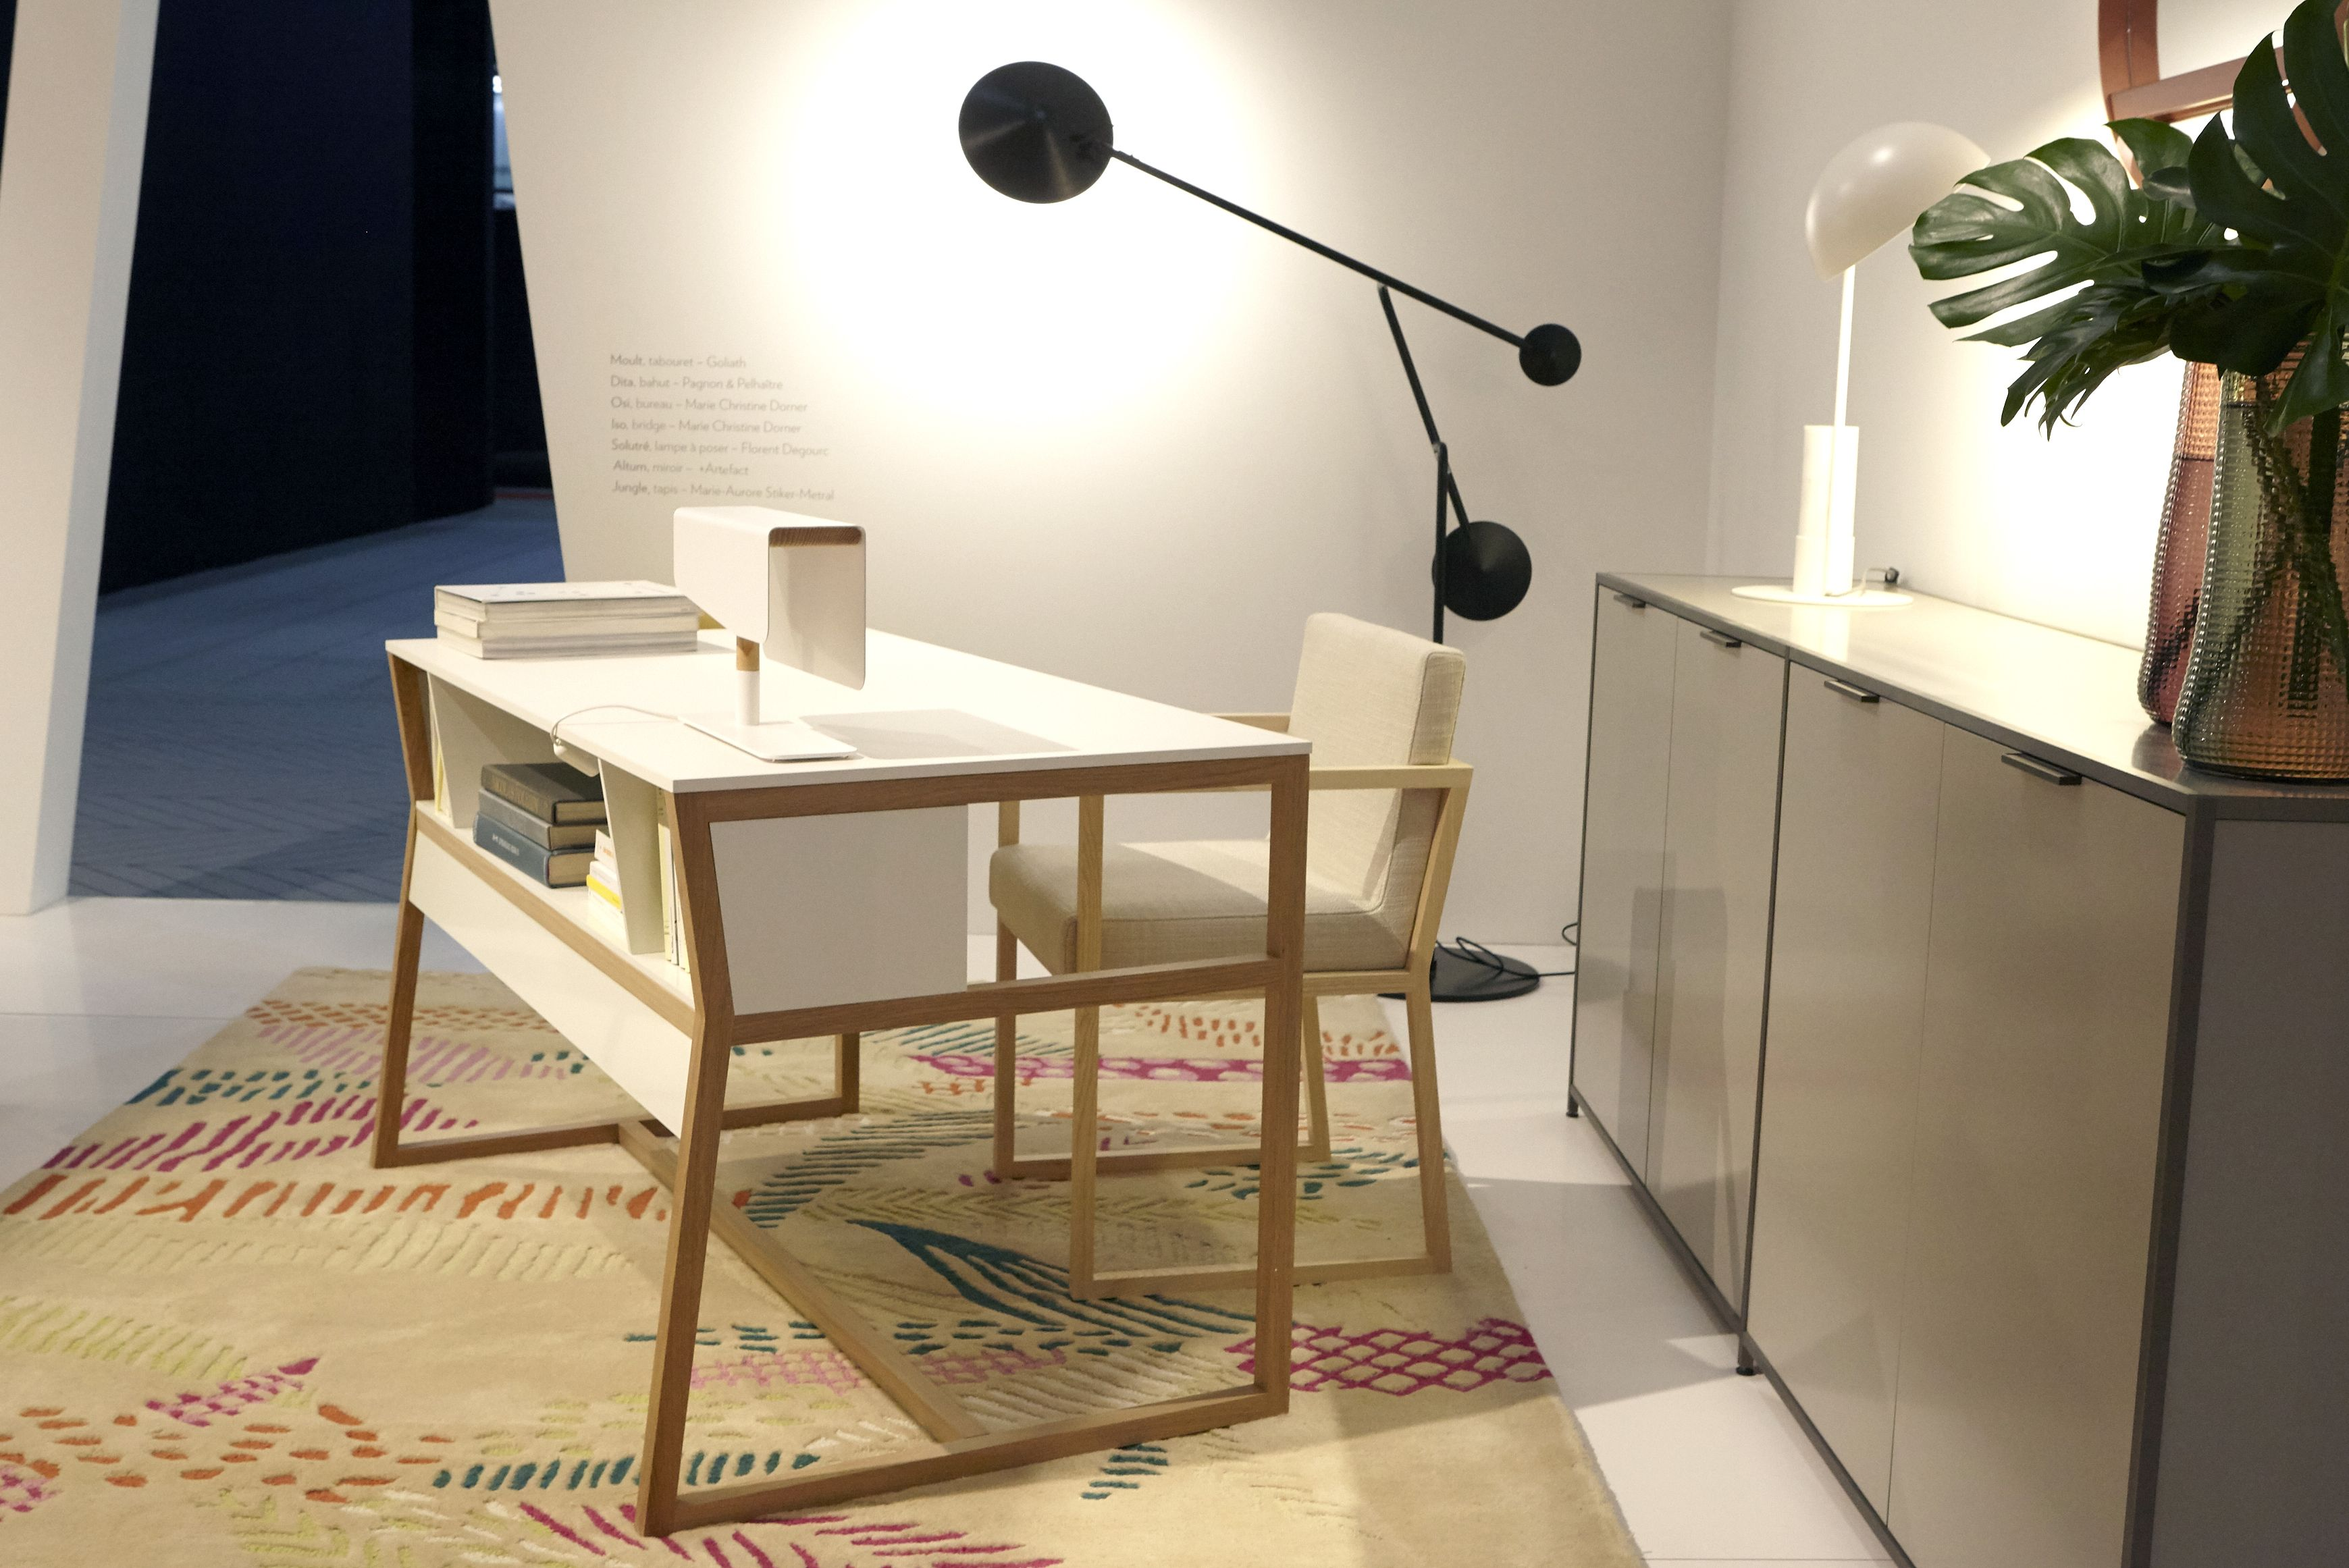 Discover pieces from Ligne Roset's new product collection for 2018 by designers including Pierre Charpin, Inga Sempé, Philippe Nigro, Christian Werner, Marie Christine Dorner, among others. Scenography of the booth by Agence Francesca Avossa For more information, please visit our website: www.ligne-roset.com